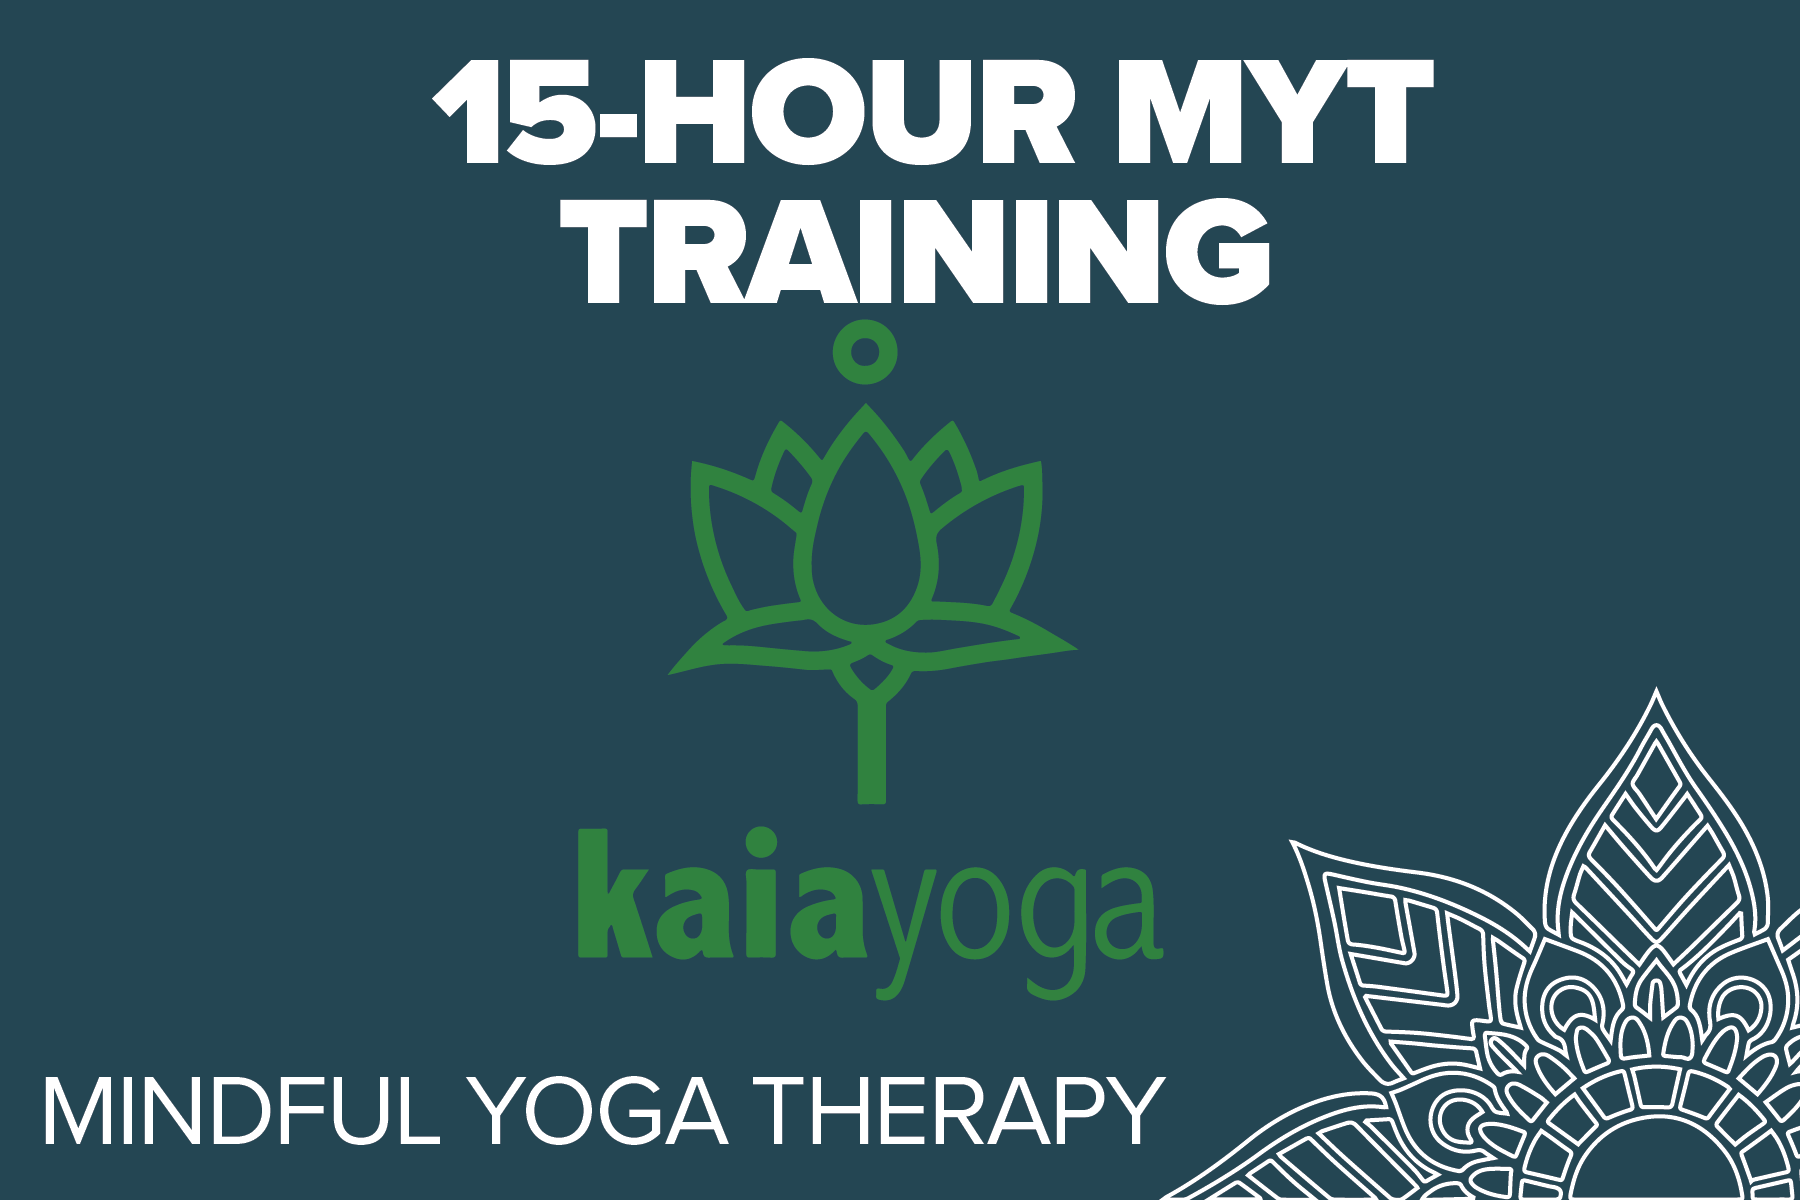 Kaia Yoga - Mindful Yoga Therapy is an empirically informed, clinically tested program comprised of five practices: Pranayama (breathing), Asana (postures connected with breath), Yoga Nidra, Meditation, and Gratitude. REGISTRATION COMING SOON!